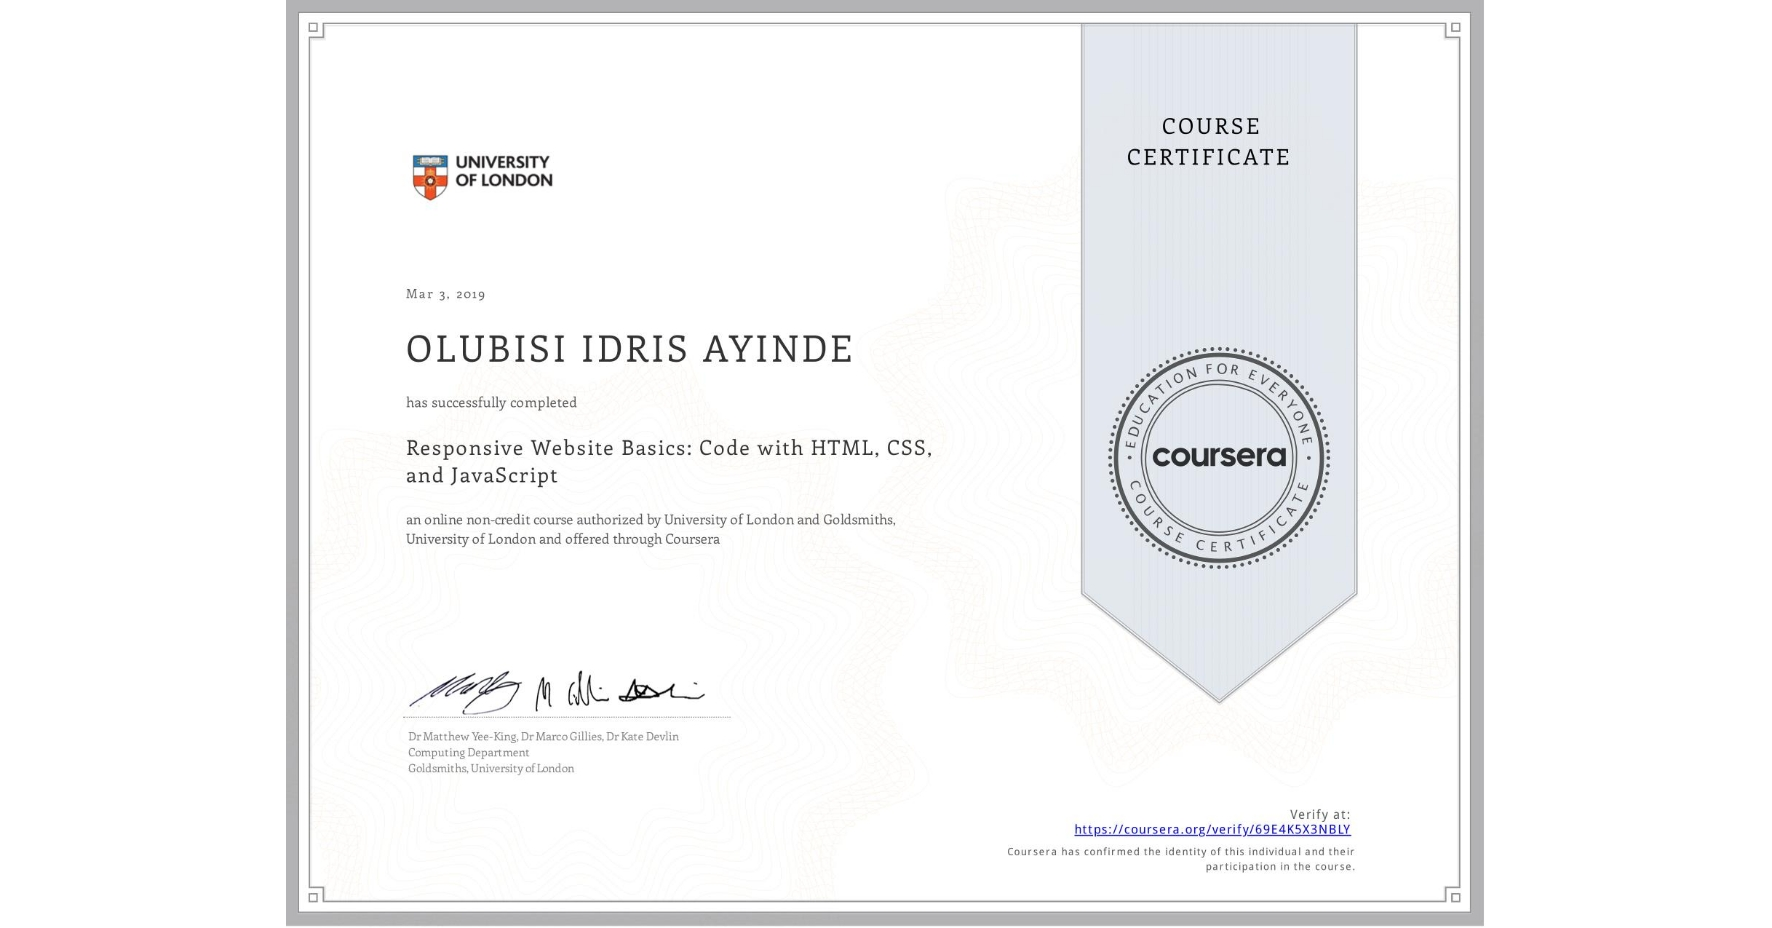 View certificate for OLUBISI IDRIS AYINDE, Responsive Website Basics: Code with HTML, CSS, and JavaScript , an online non-credit course authorized by University of London & Goldsmiths, University of London and offered through Coursera